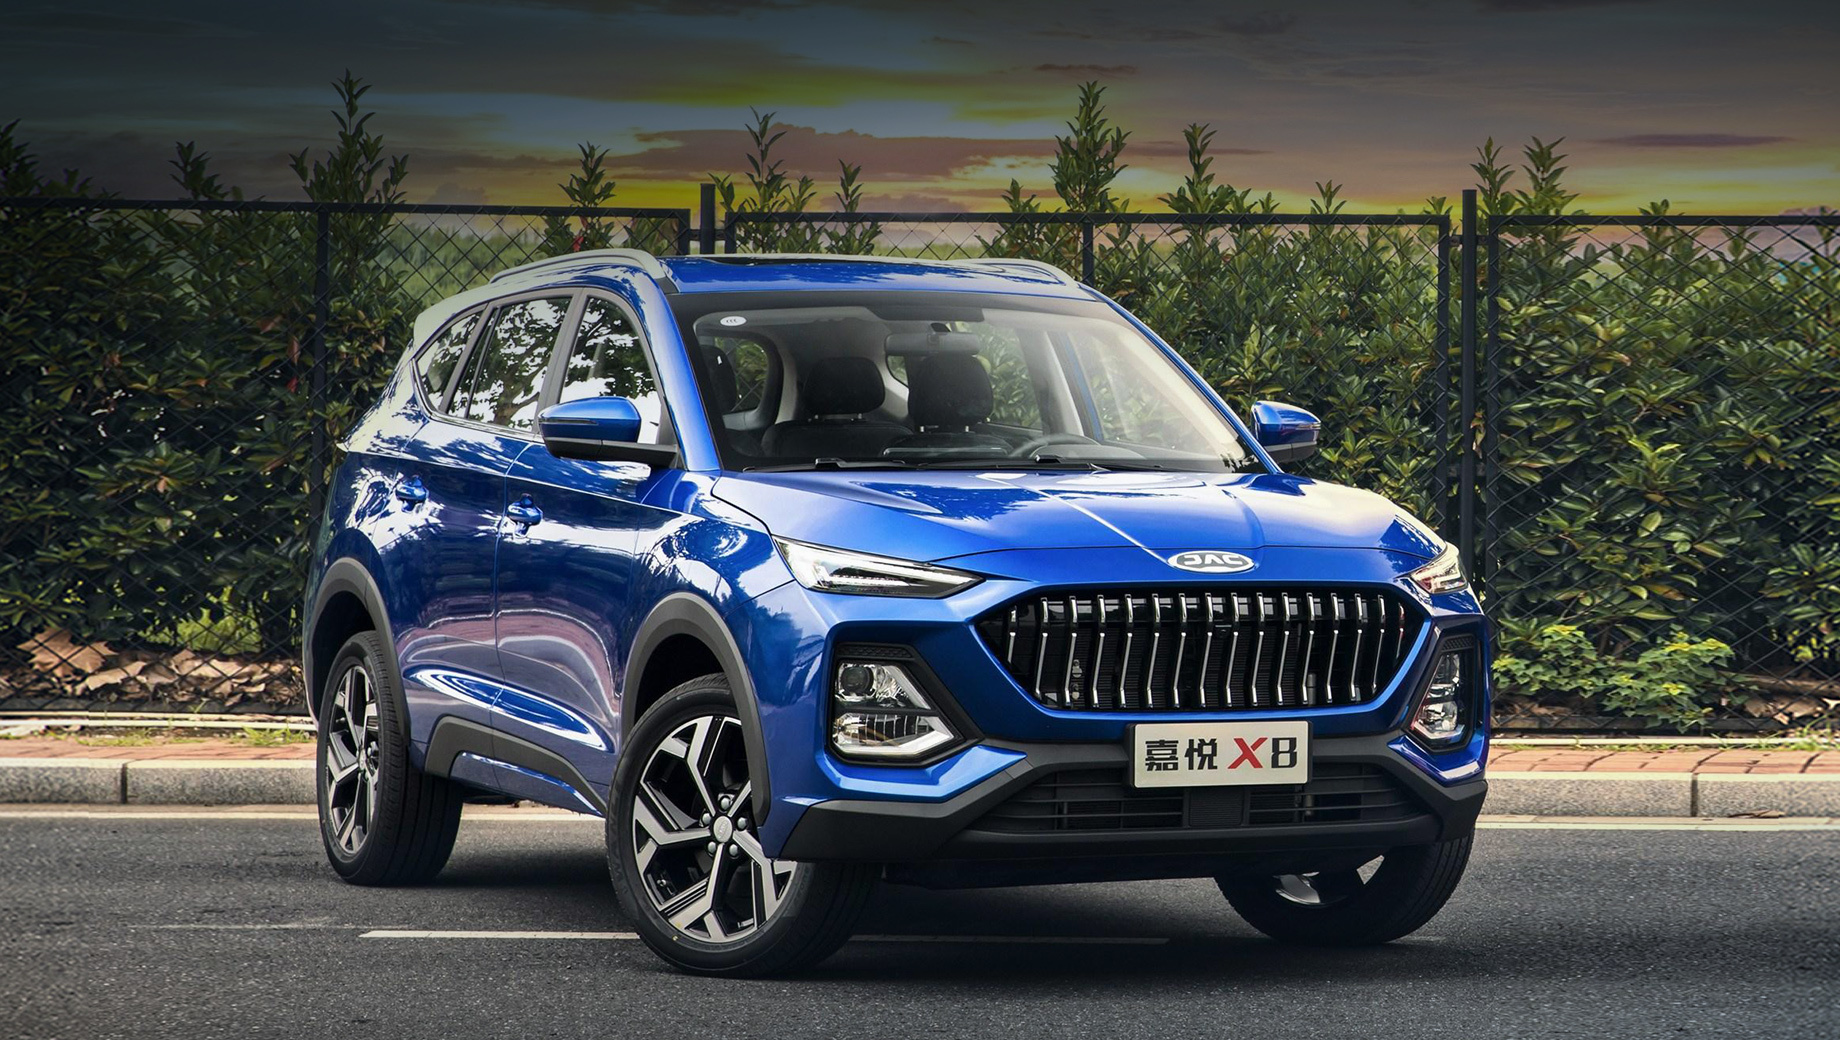 The JAC Jiayue X8 will celebrate its official premiere at the Chengdu Motor Show on July 24, 2020 and reach the market in five-, six- and seven-seater versions.